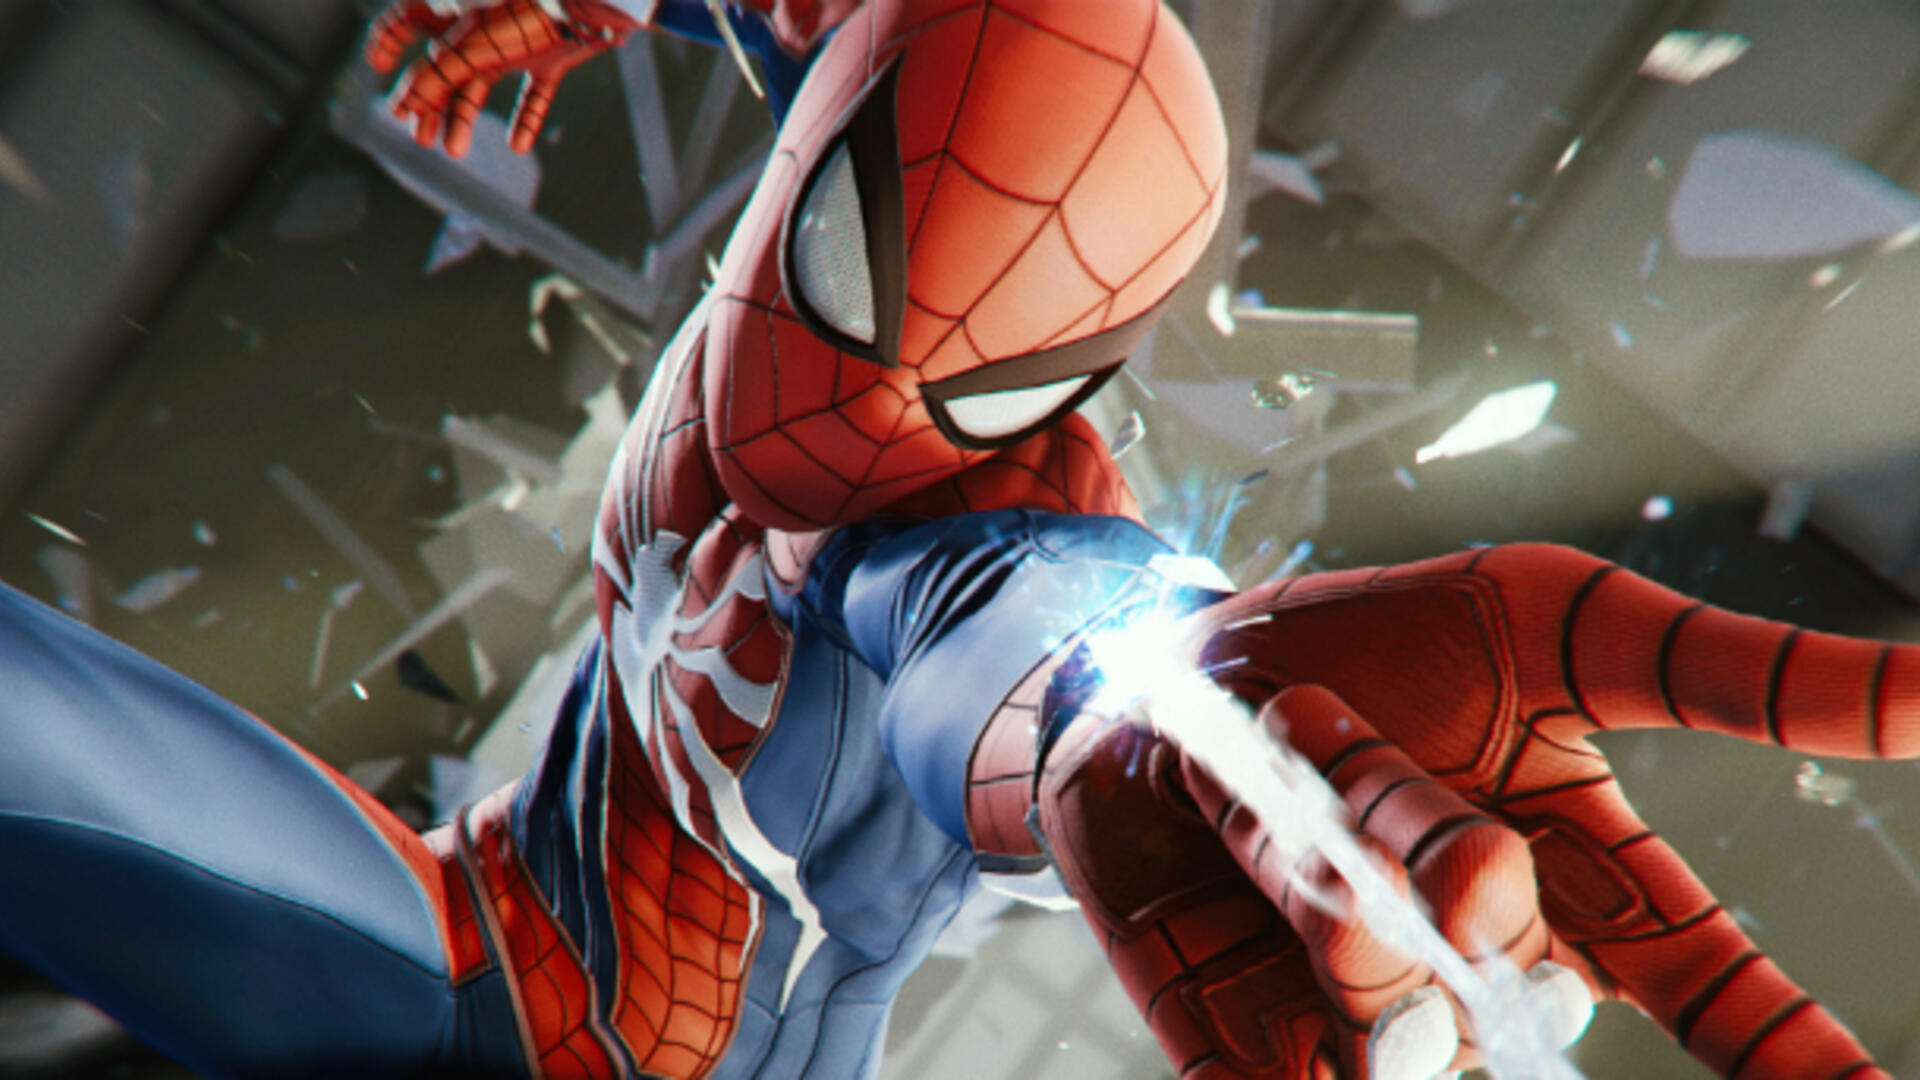 Spider-Man PS4 Silver Lining DLC Release Date - The City That Never Sleeps, Everything We Know